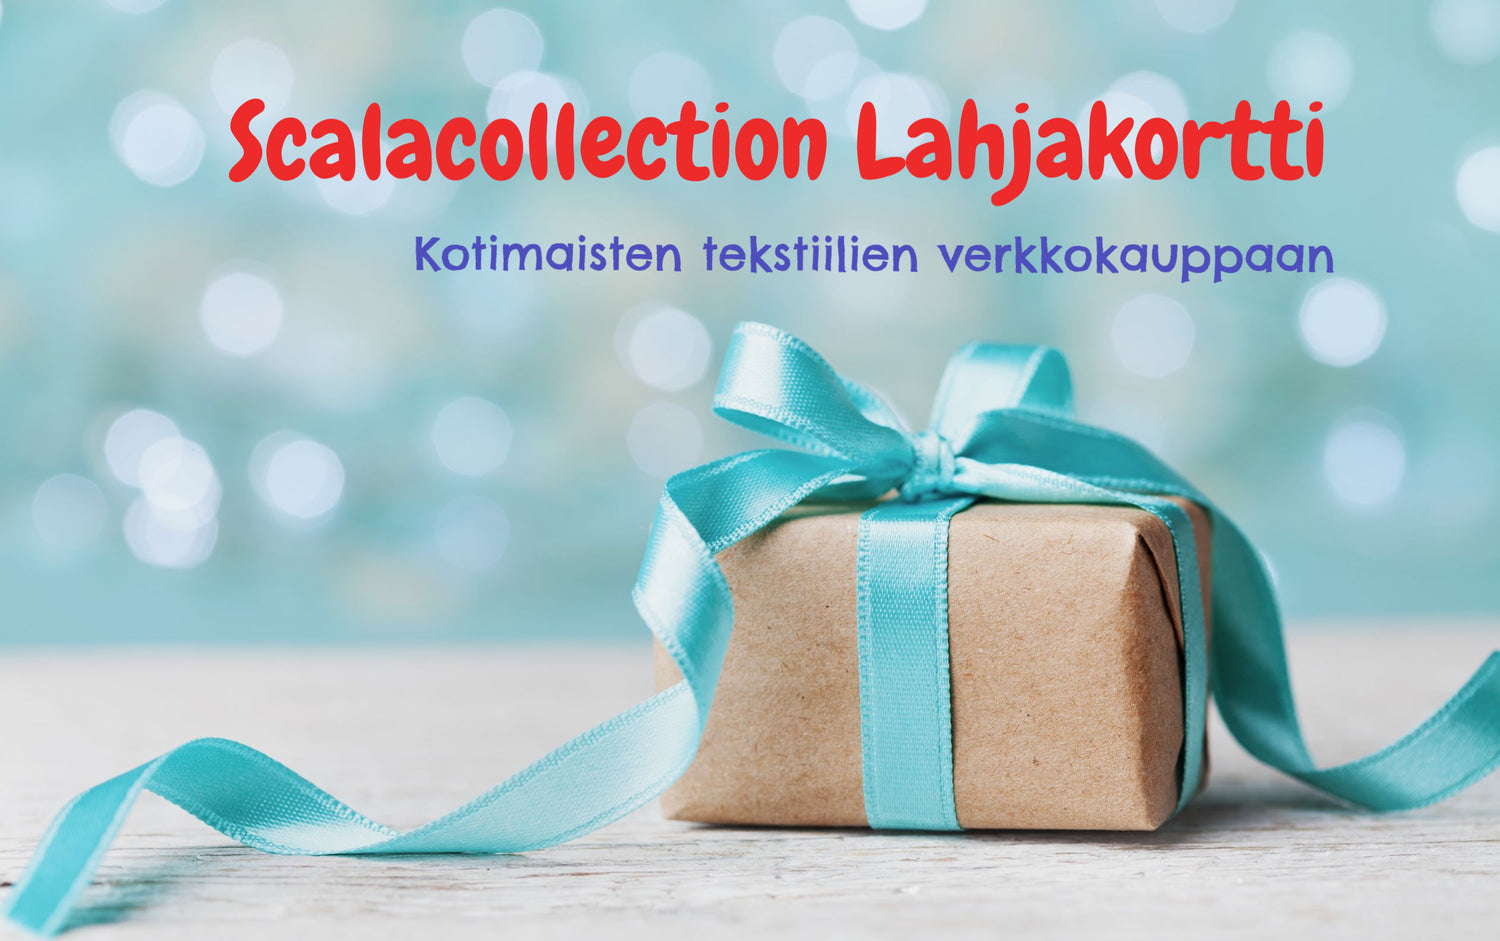 Scalacollection Lahjakortti